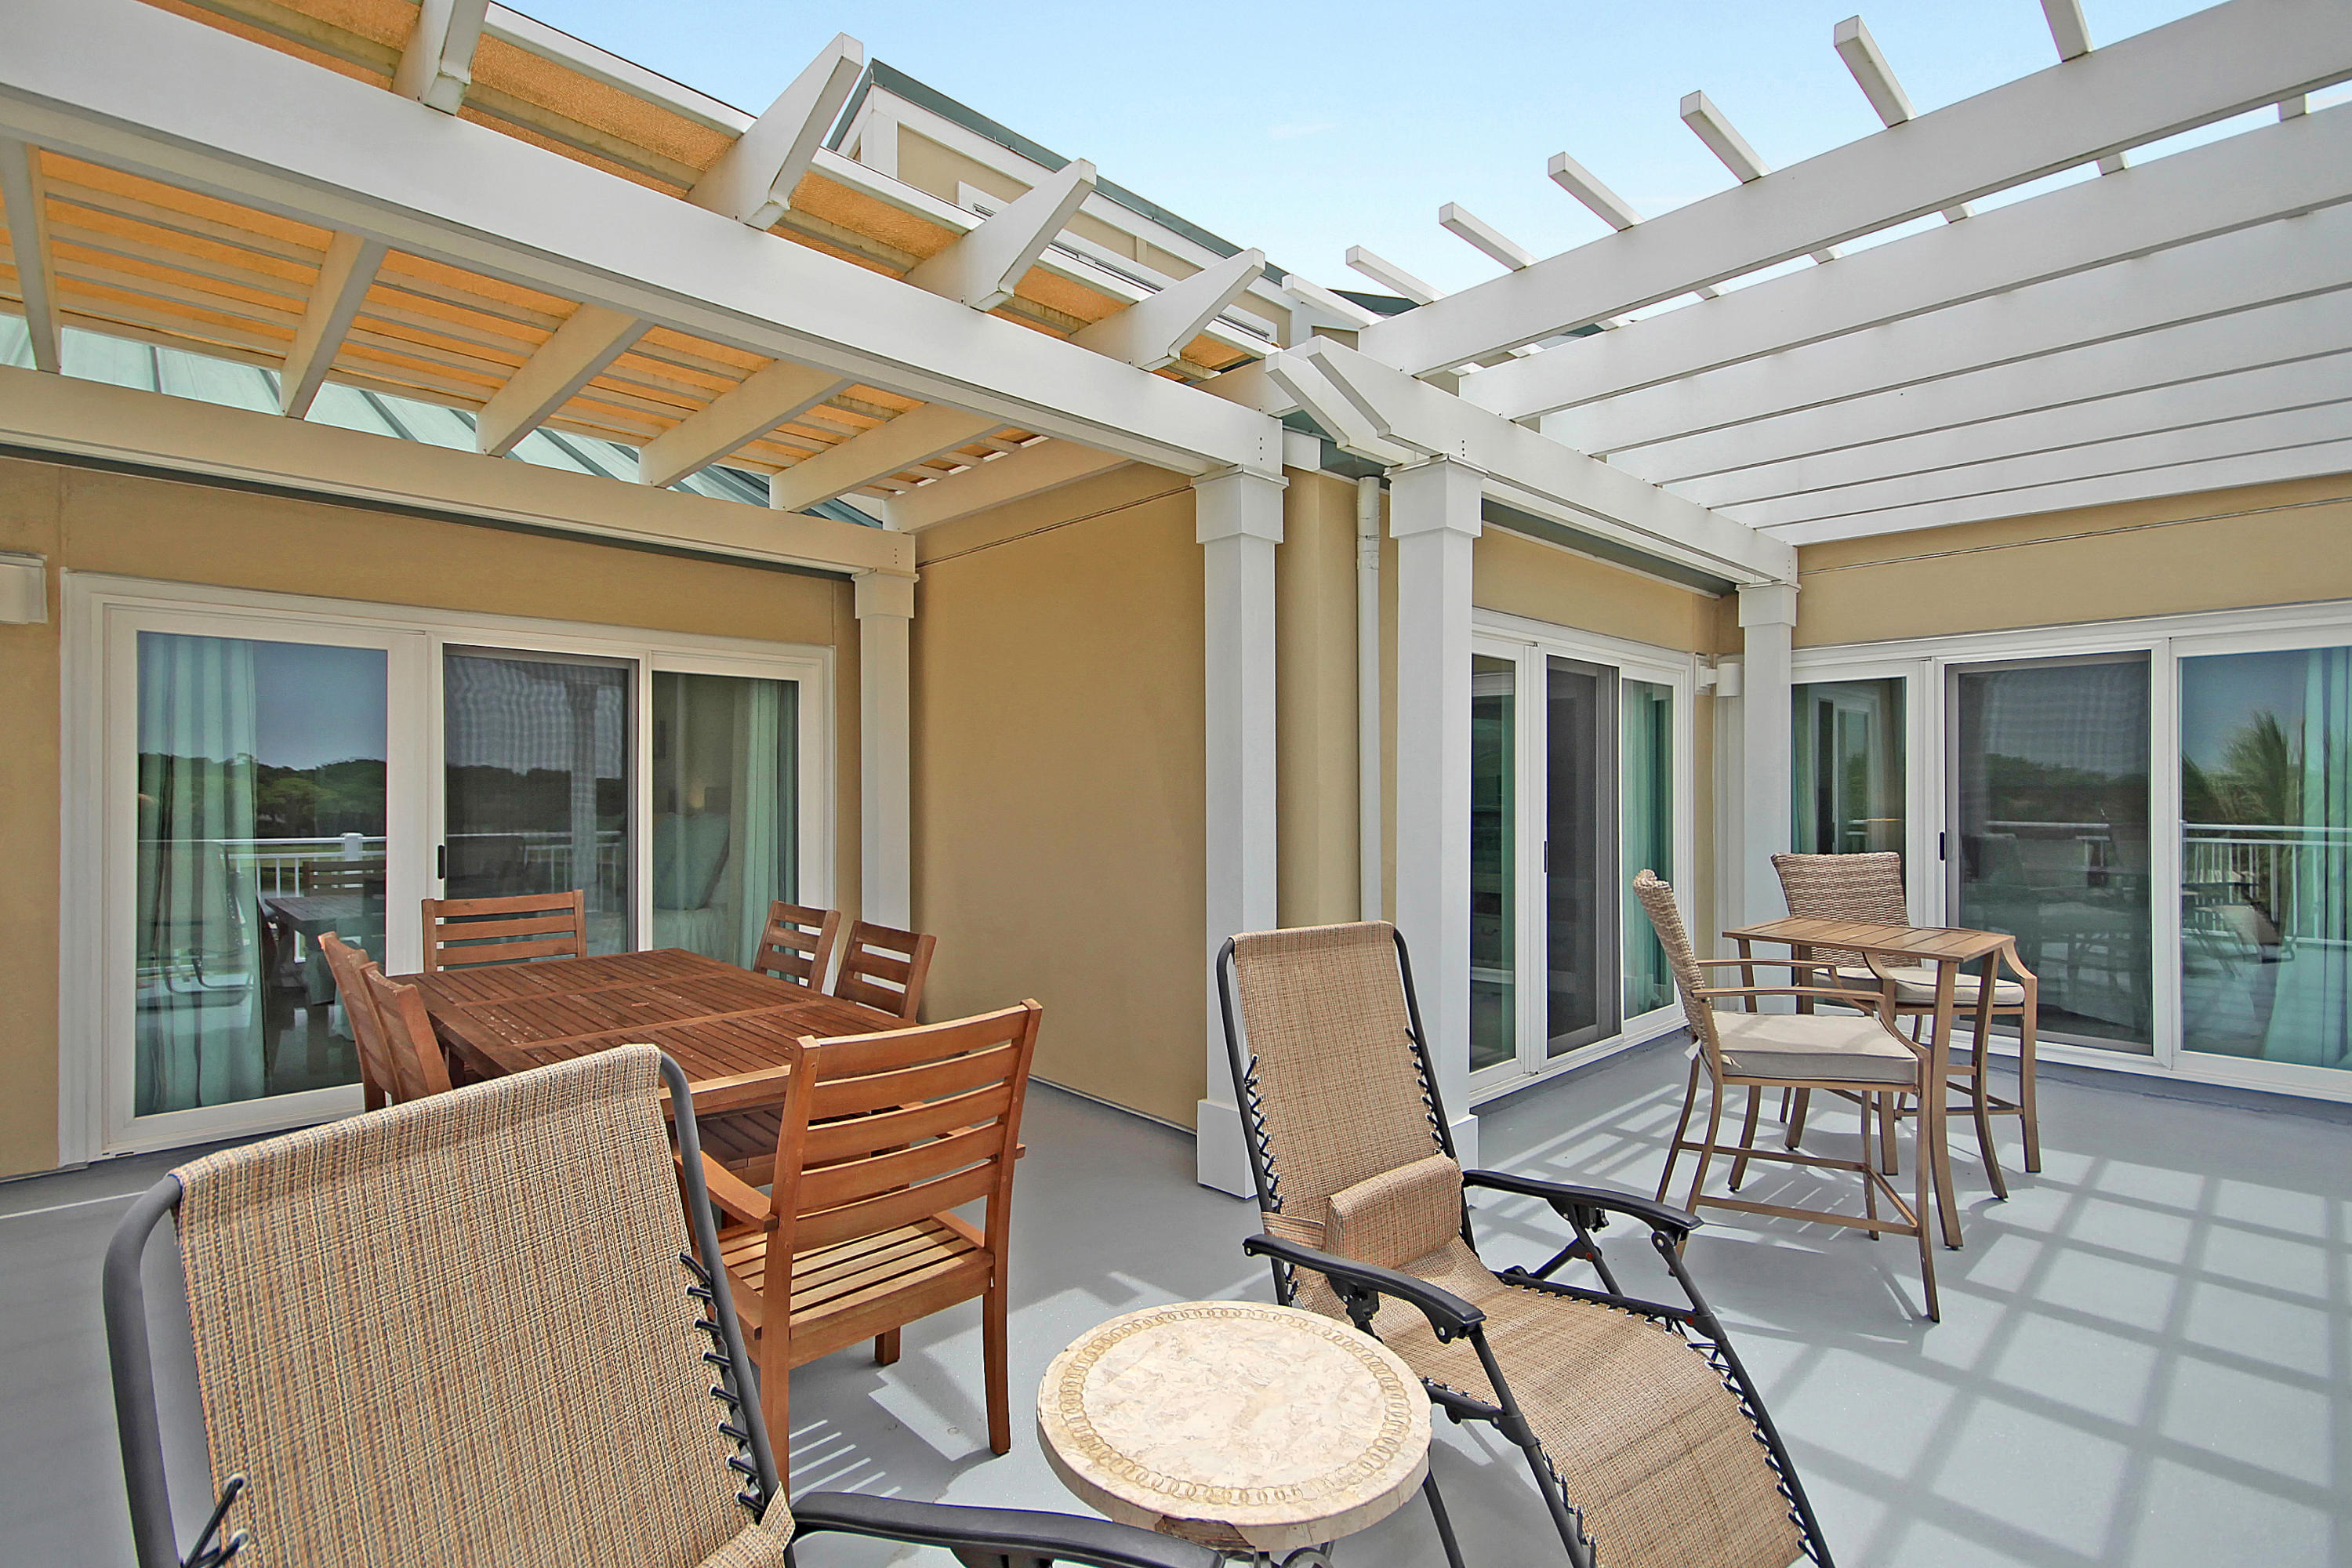 Atrium Villas Homes For Sale - 2912 Atrium Villa, Seabrook Island, SC - 15